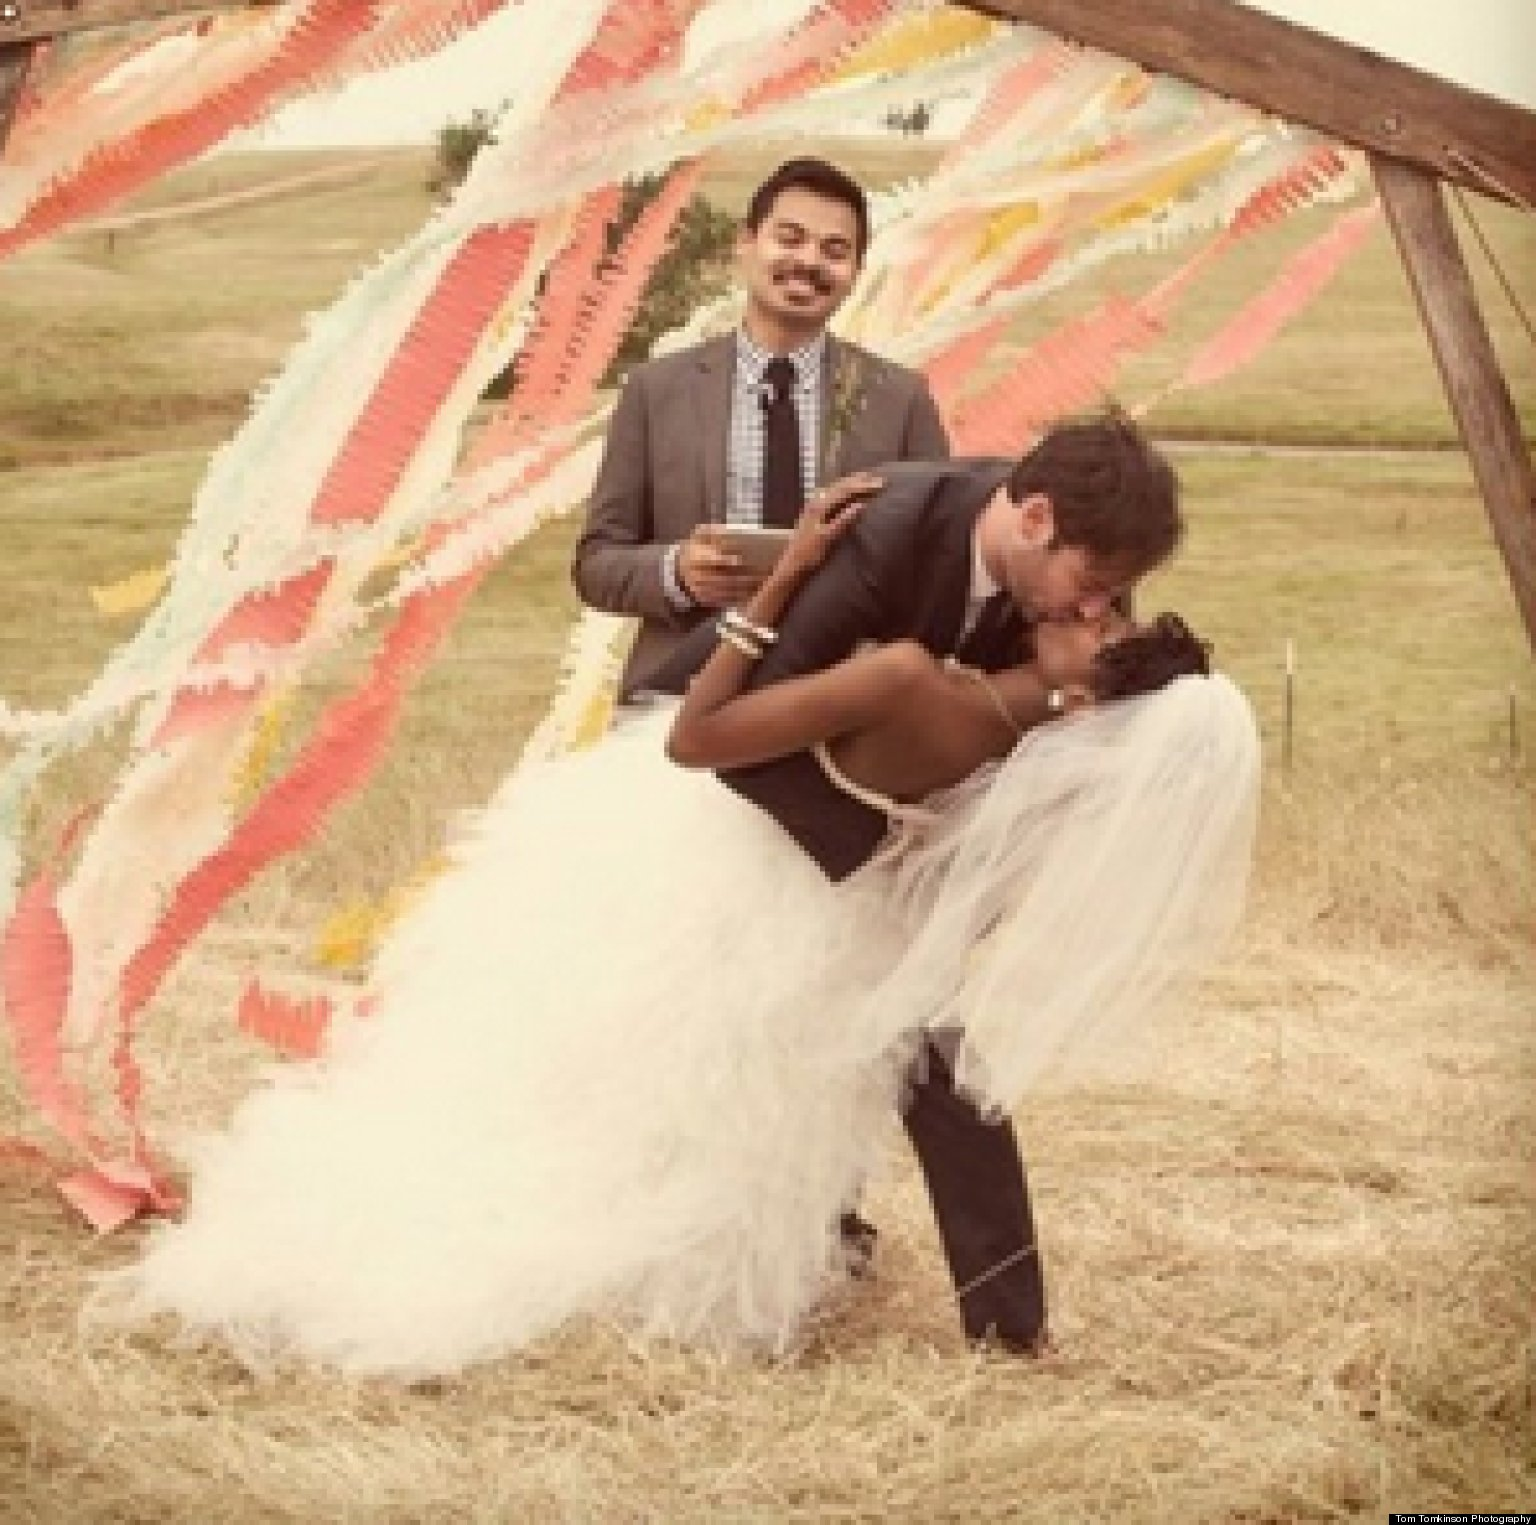 20 Insanely Cute Wedding Photos To Cheer You Up